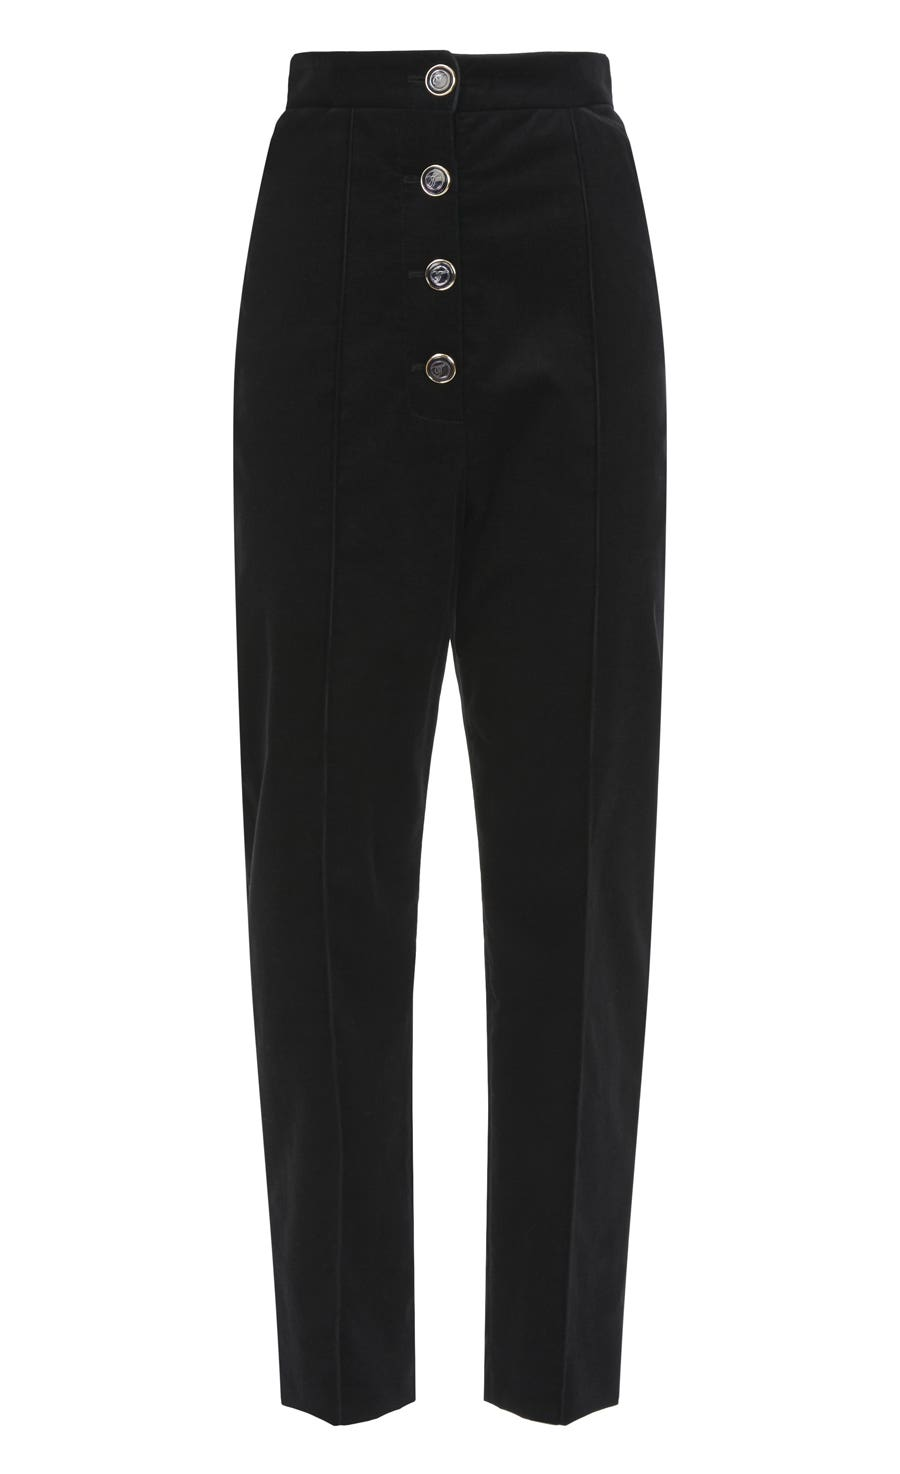 Papillon Tailoring Trousers, Black